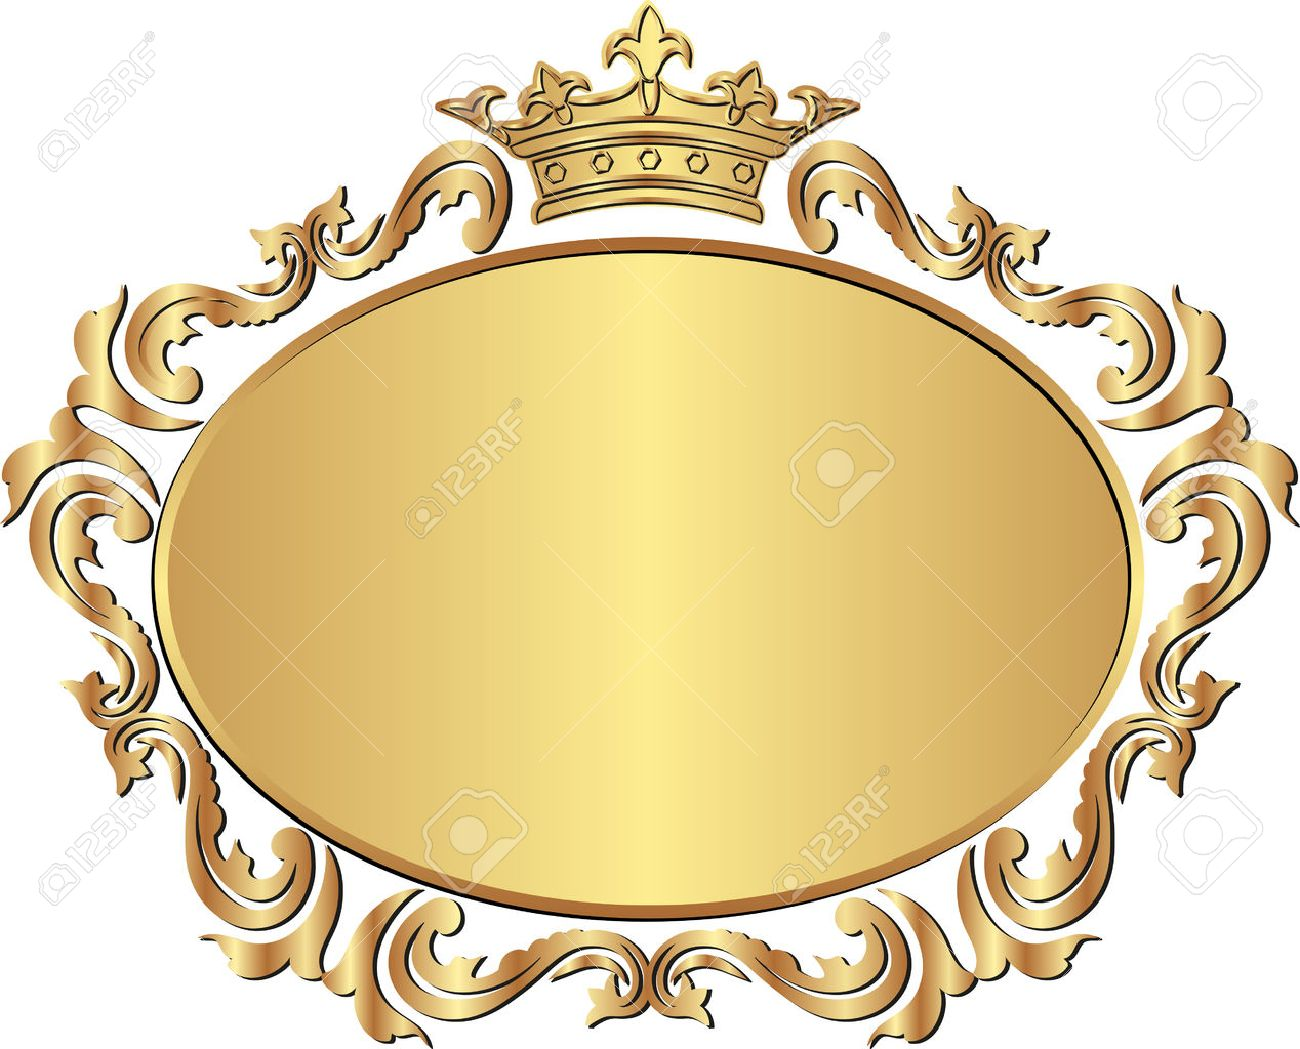 golden royal frame with crown royalty free cliparts vectors and